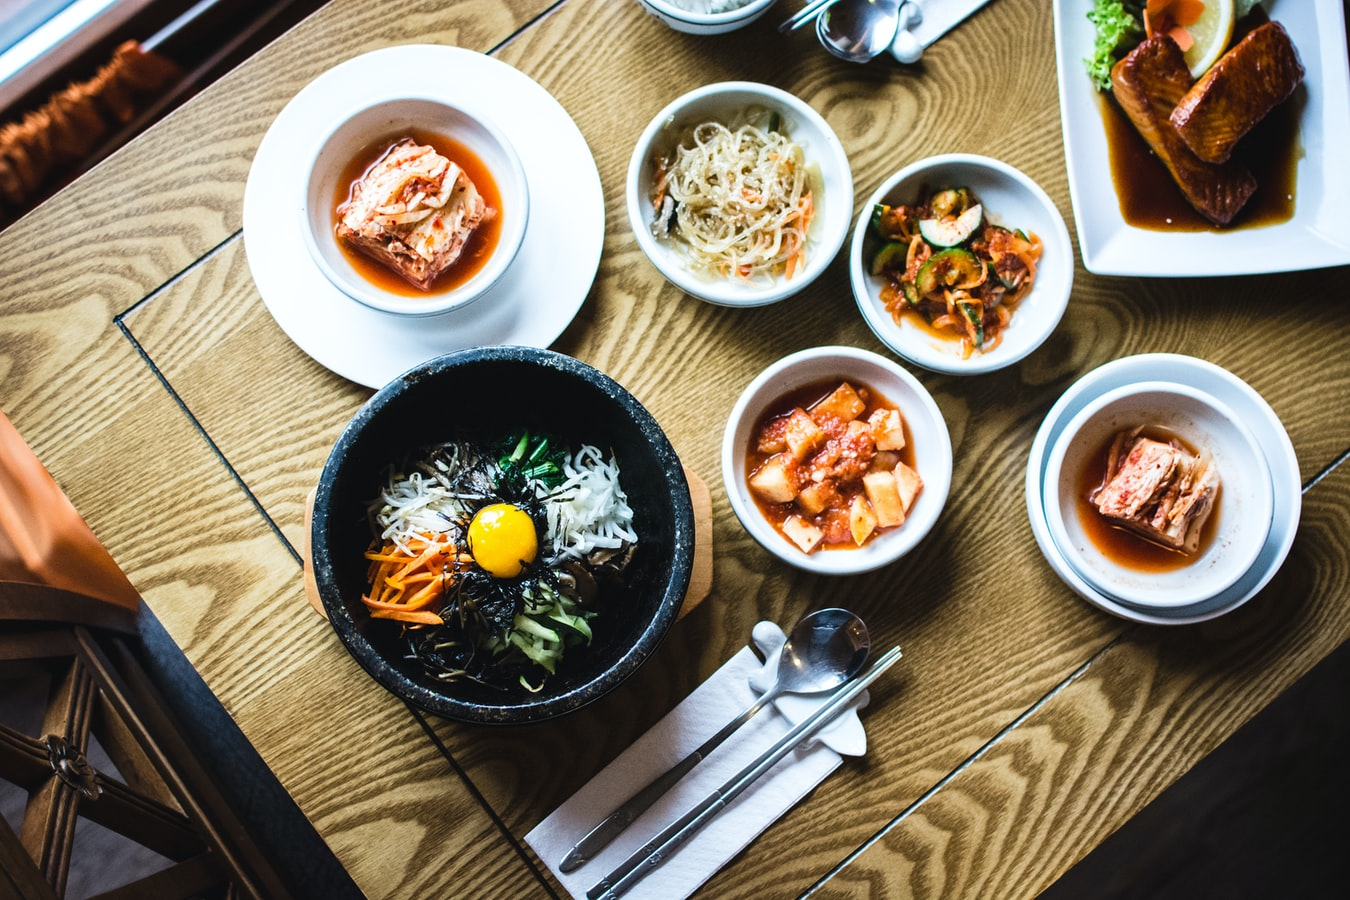 Delicious Korean food full of flavors, textures and colours